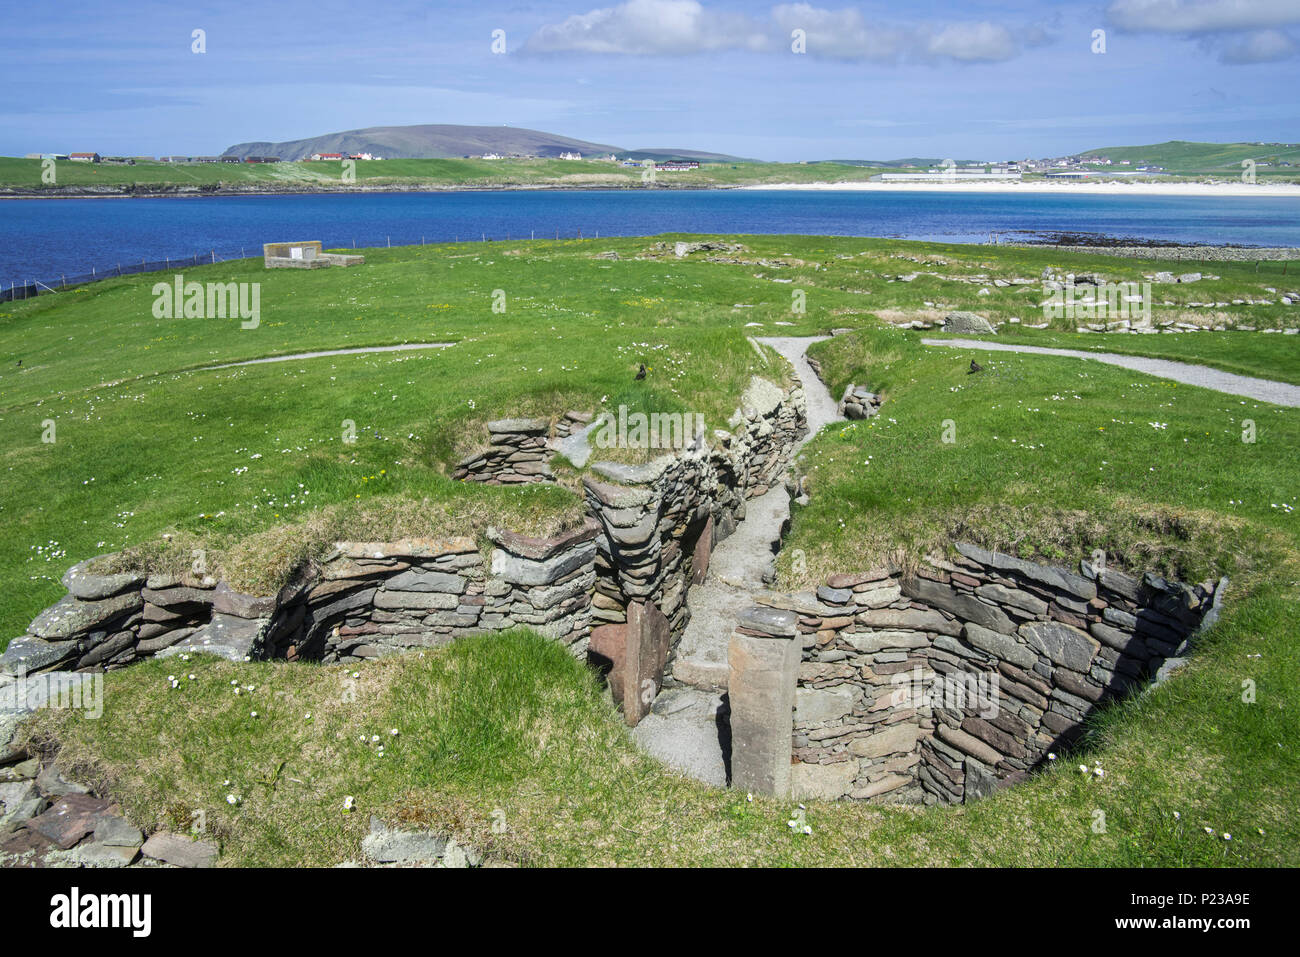 Remains of earthhouse at Jarlshof, archaeological site showing prehistoric and Norse settlements at Sumburgh Head, Shetland Islands, Scotland, UK - Stock Image